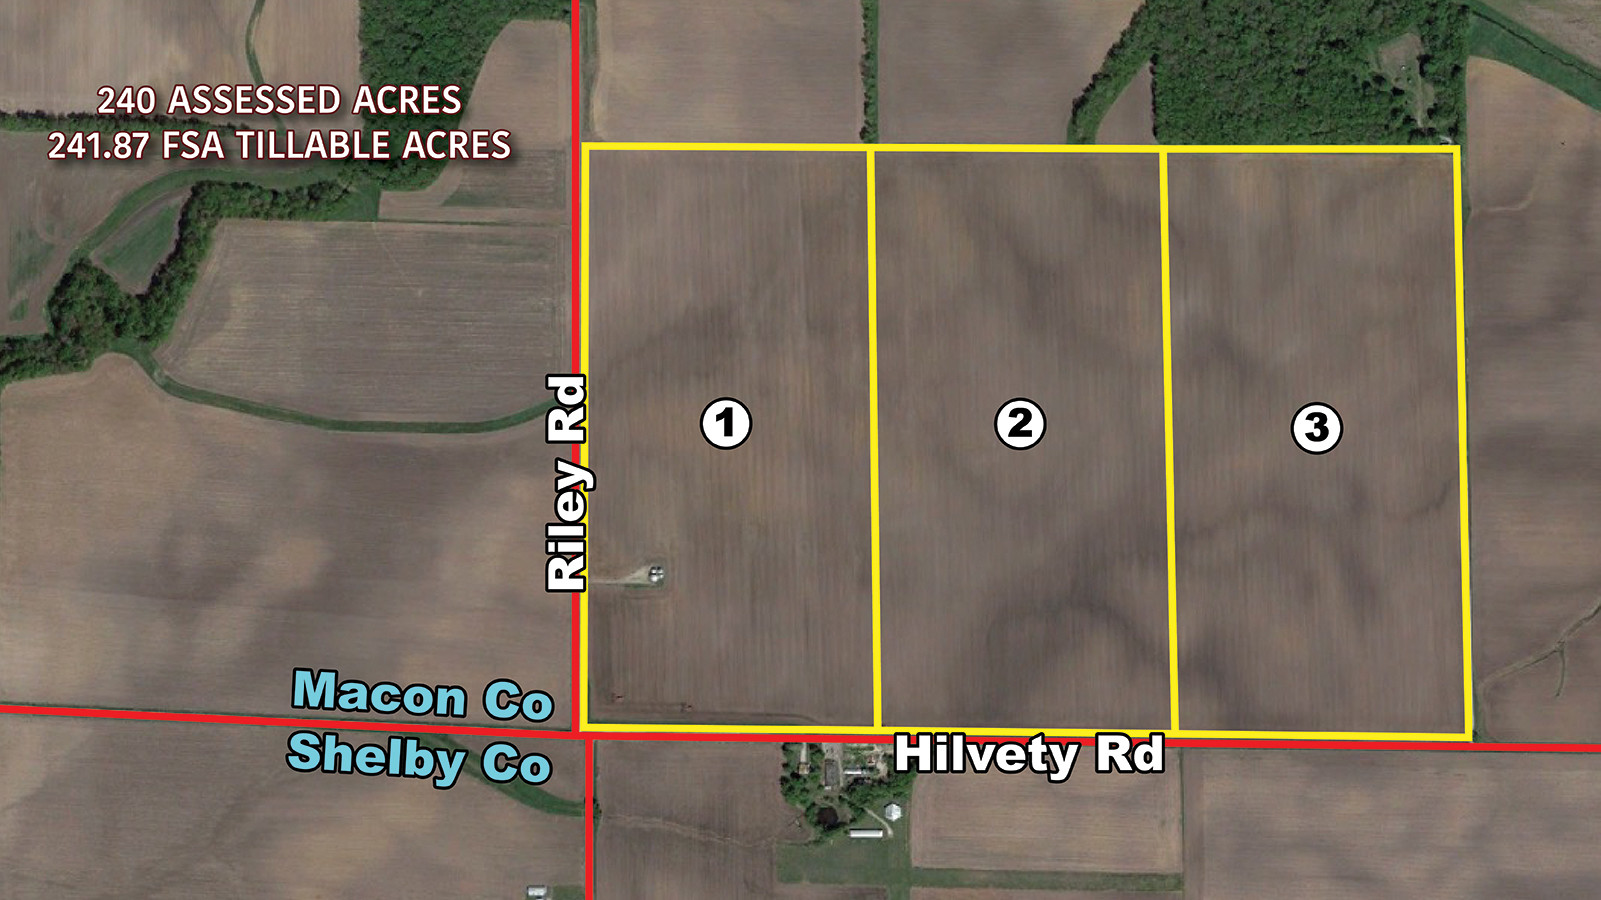 Aerial Map w Tracts - MWA Auctions & Real Estate _ Macon Co Farmland Auction 240 Ac - Dec 12 2019